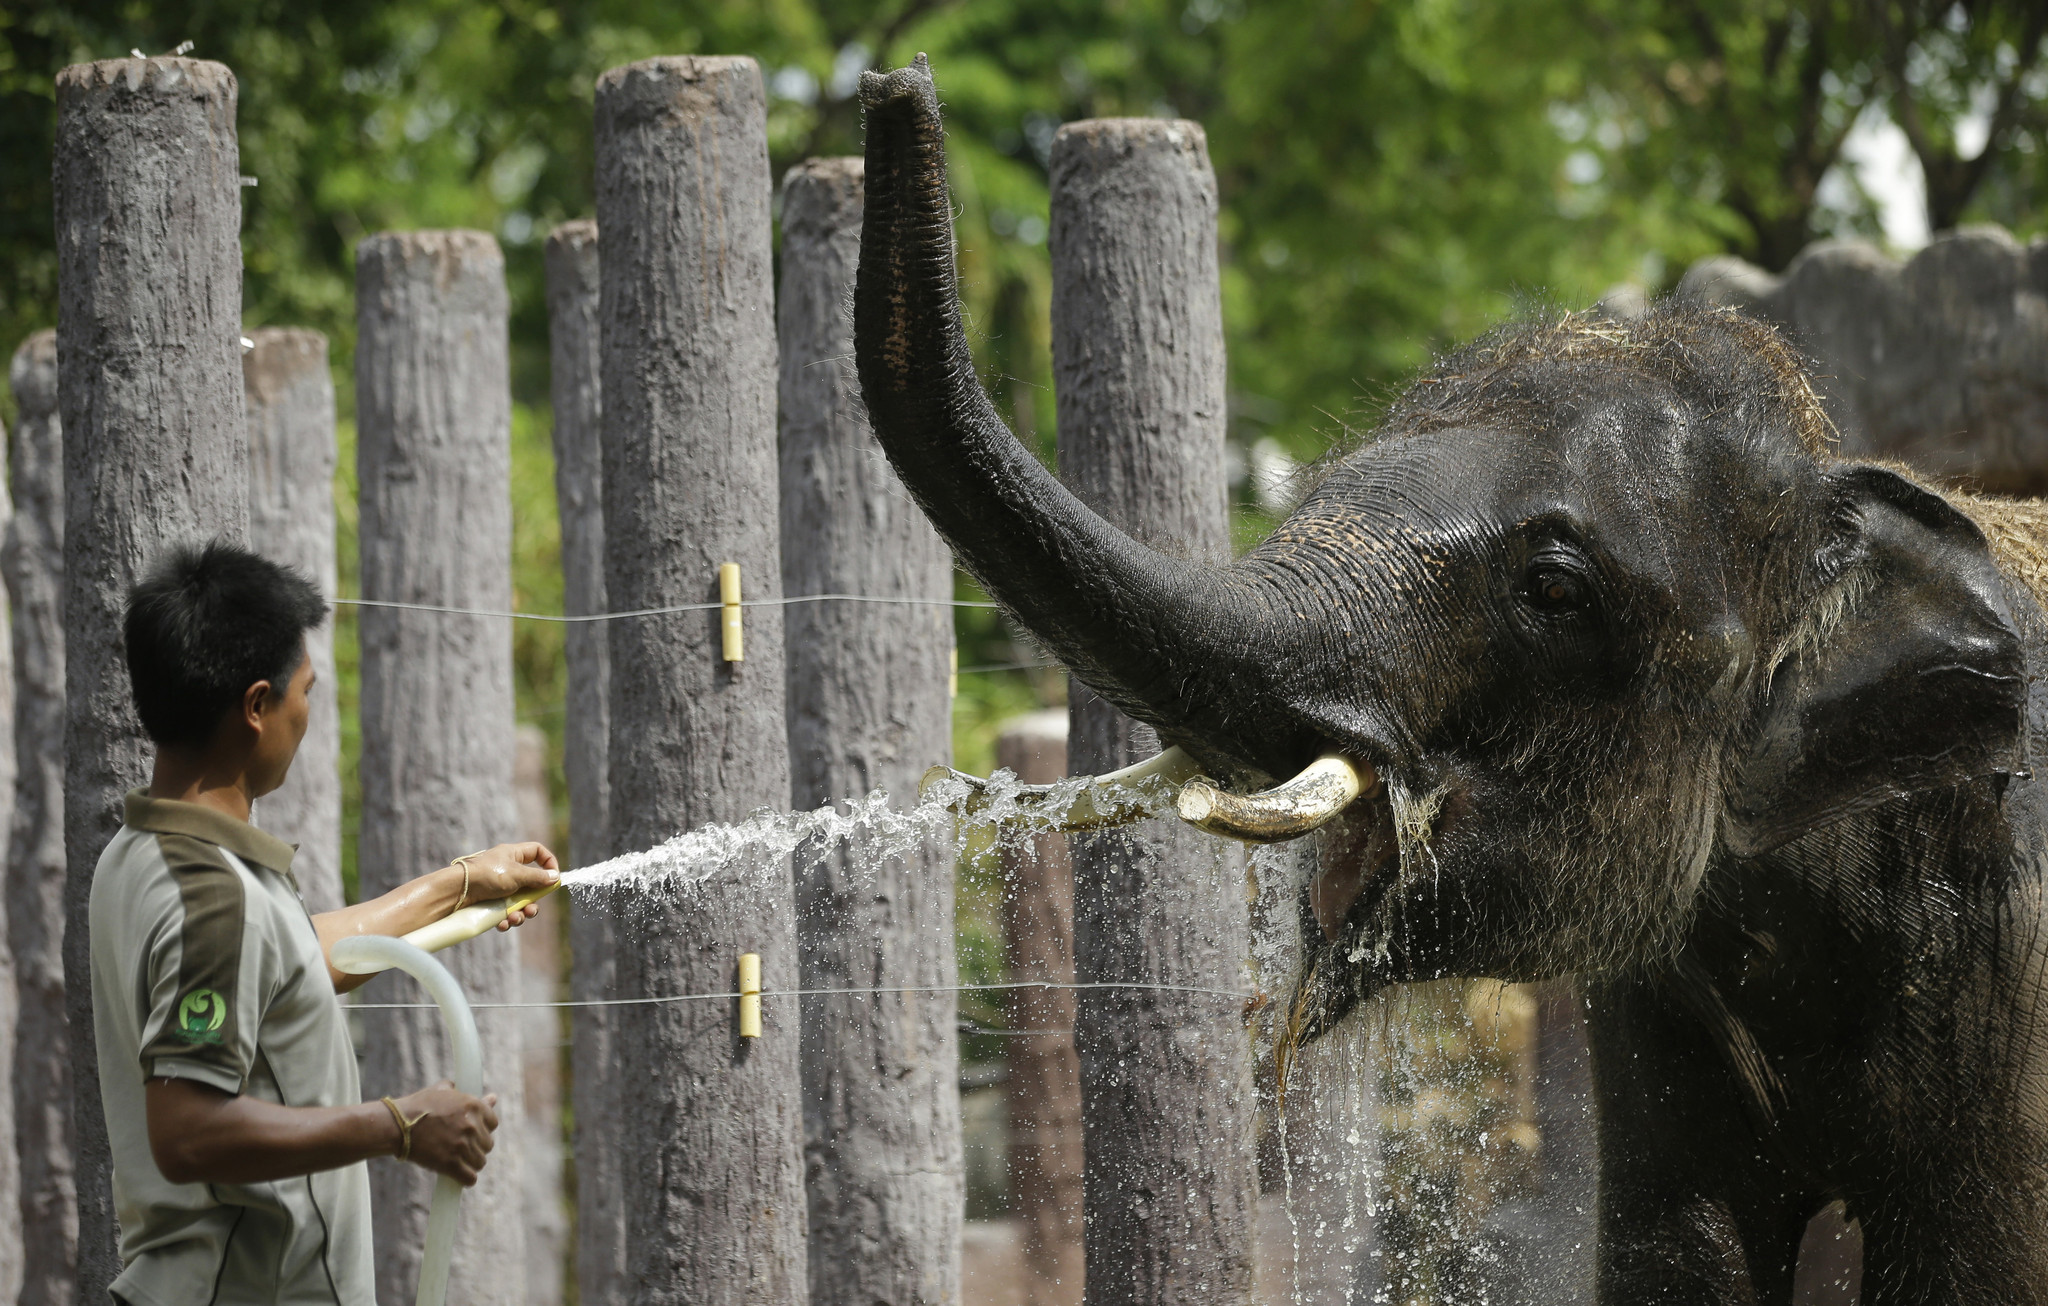 Record heat last year in Southeast Asia threatened animals and humans alike. Photo: Chicago Tribune